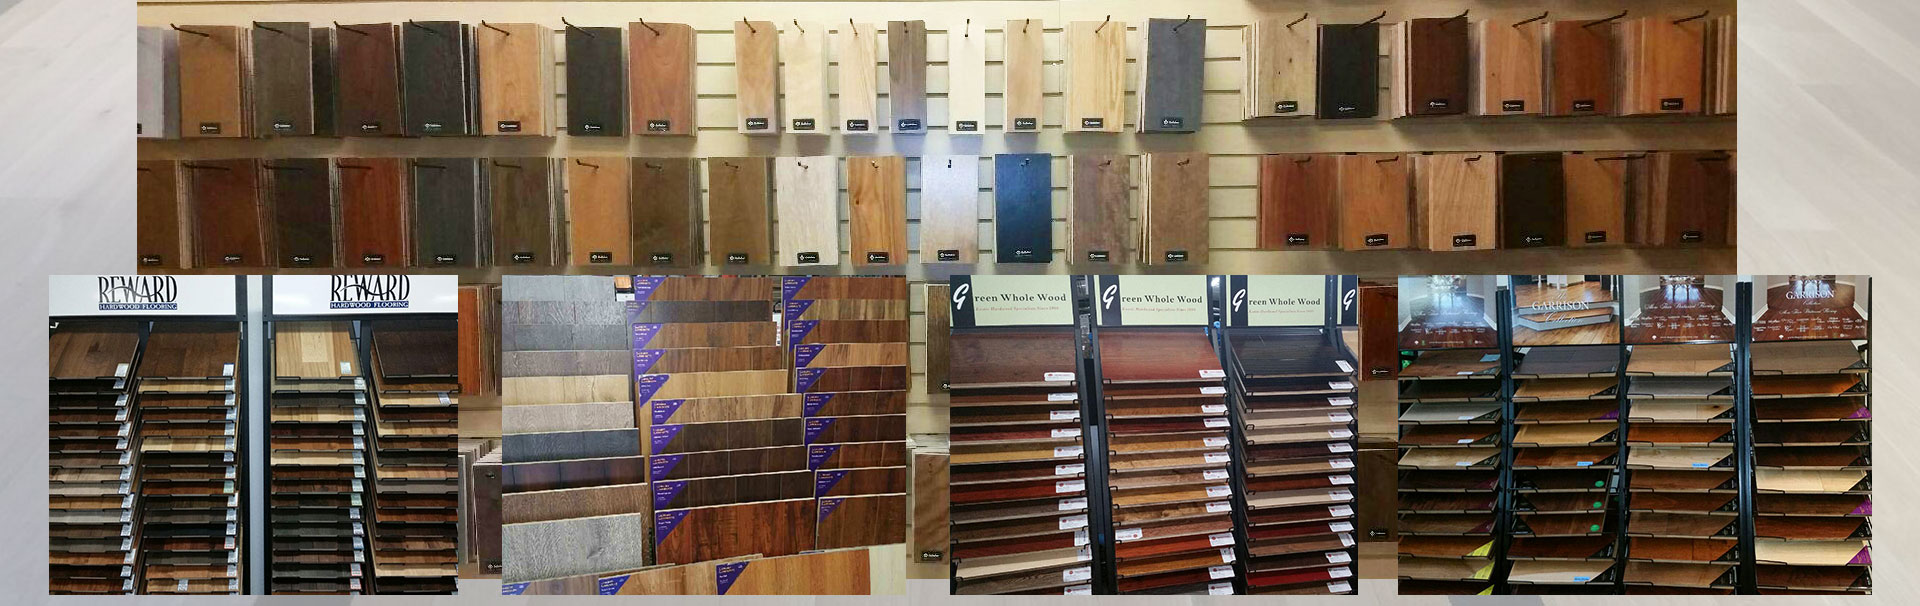 Come Visit Our Hardwood Flooring Showroom or We'll Come to You!